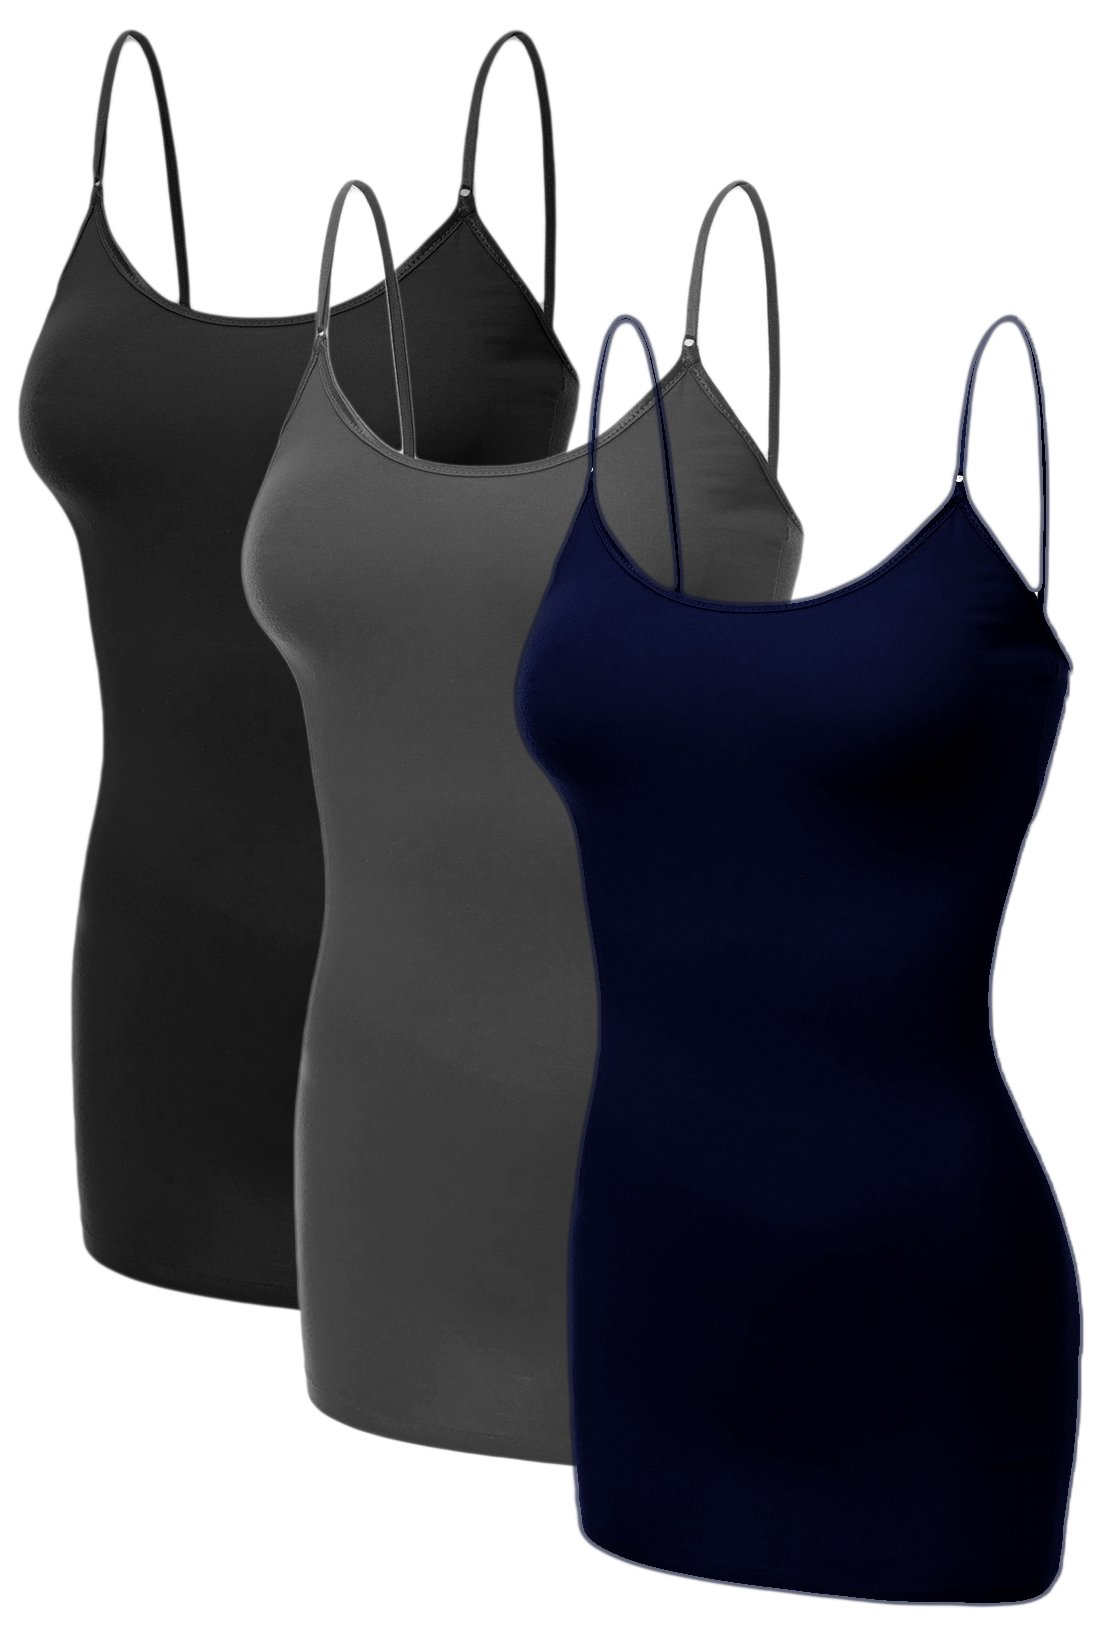 Emmalise Women's Basic Plus Size Long Camisole Cami Top Value Combo - 3Pk - Black, Charcoal, Navy, 1XL